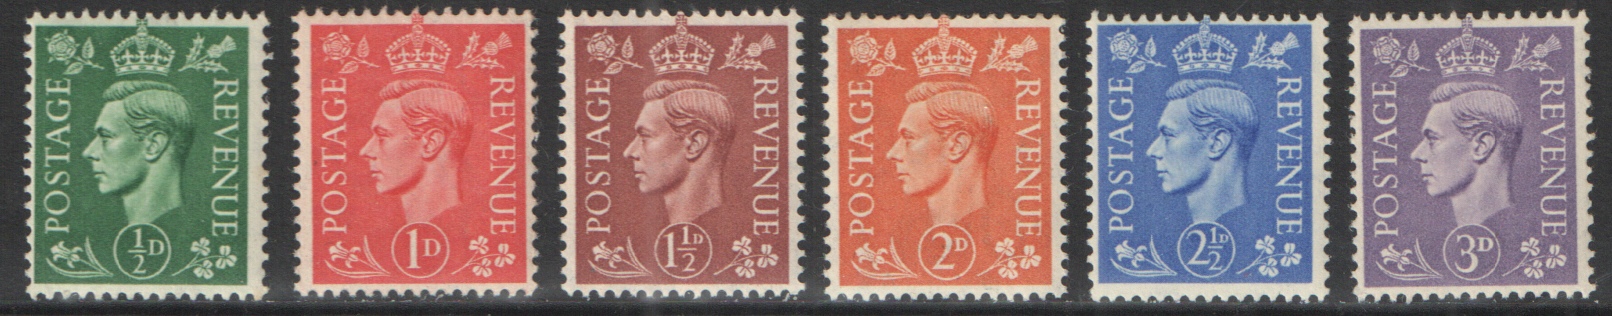 SG485 / 90 George VI 1941 Pale Colours unmounted mint set of 6